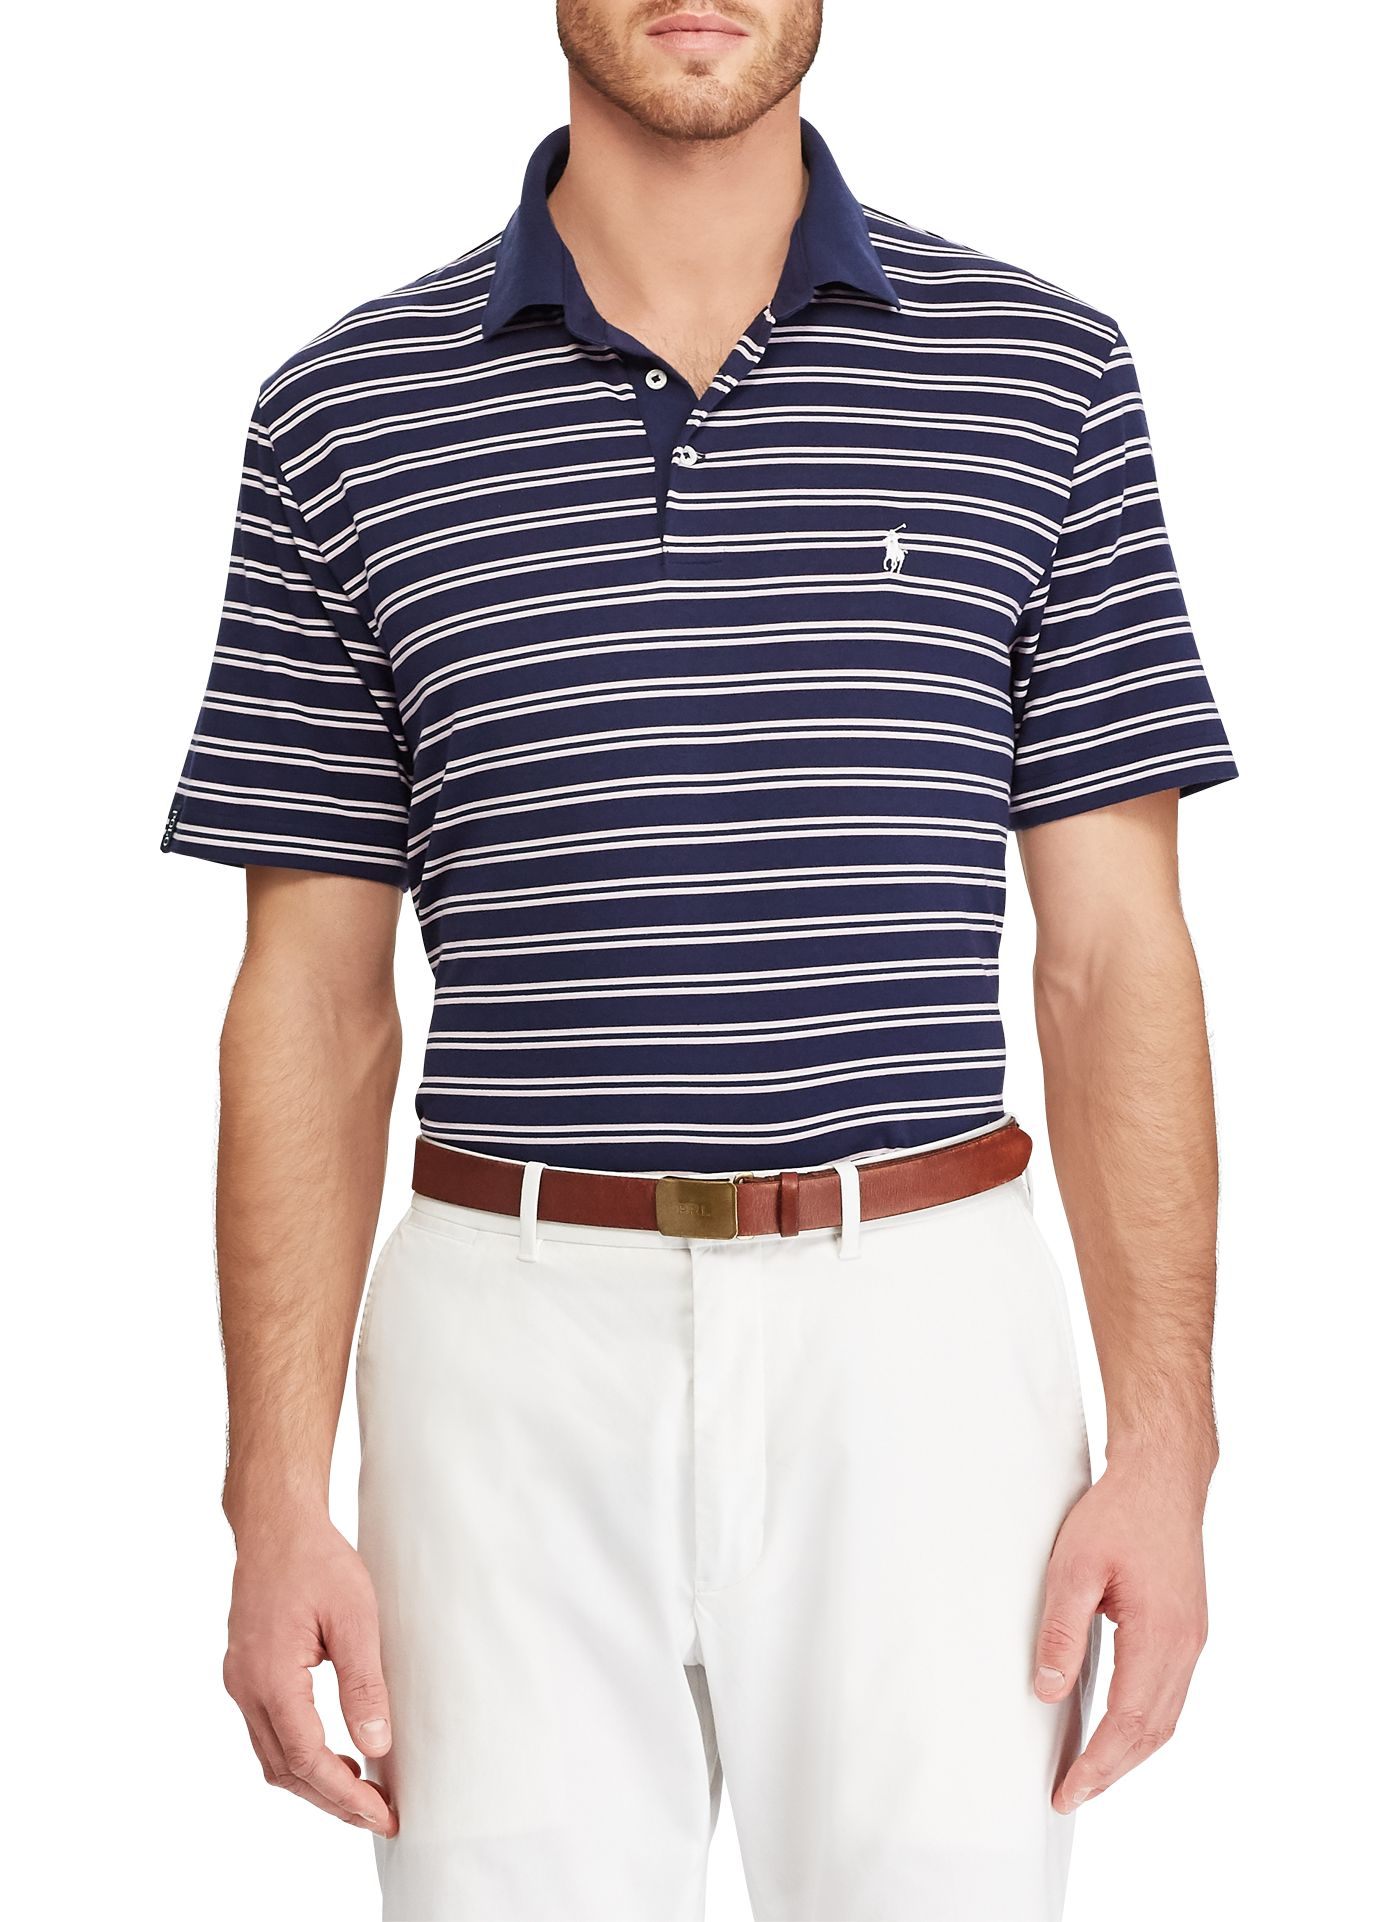 Polo Golf Men's Double Stripe Performance Lisle Golf Polo